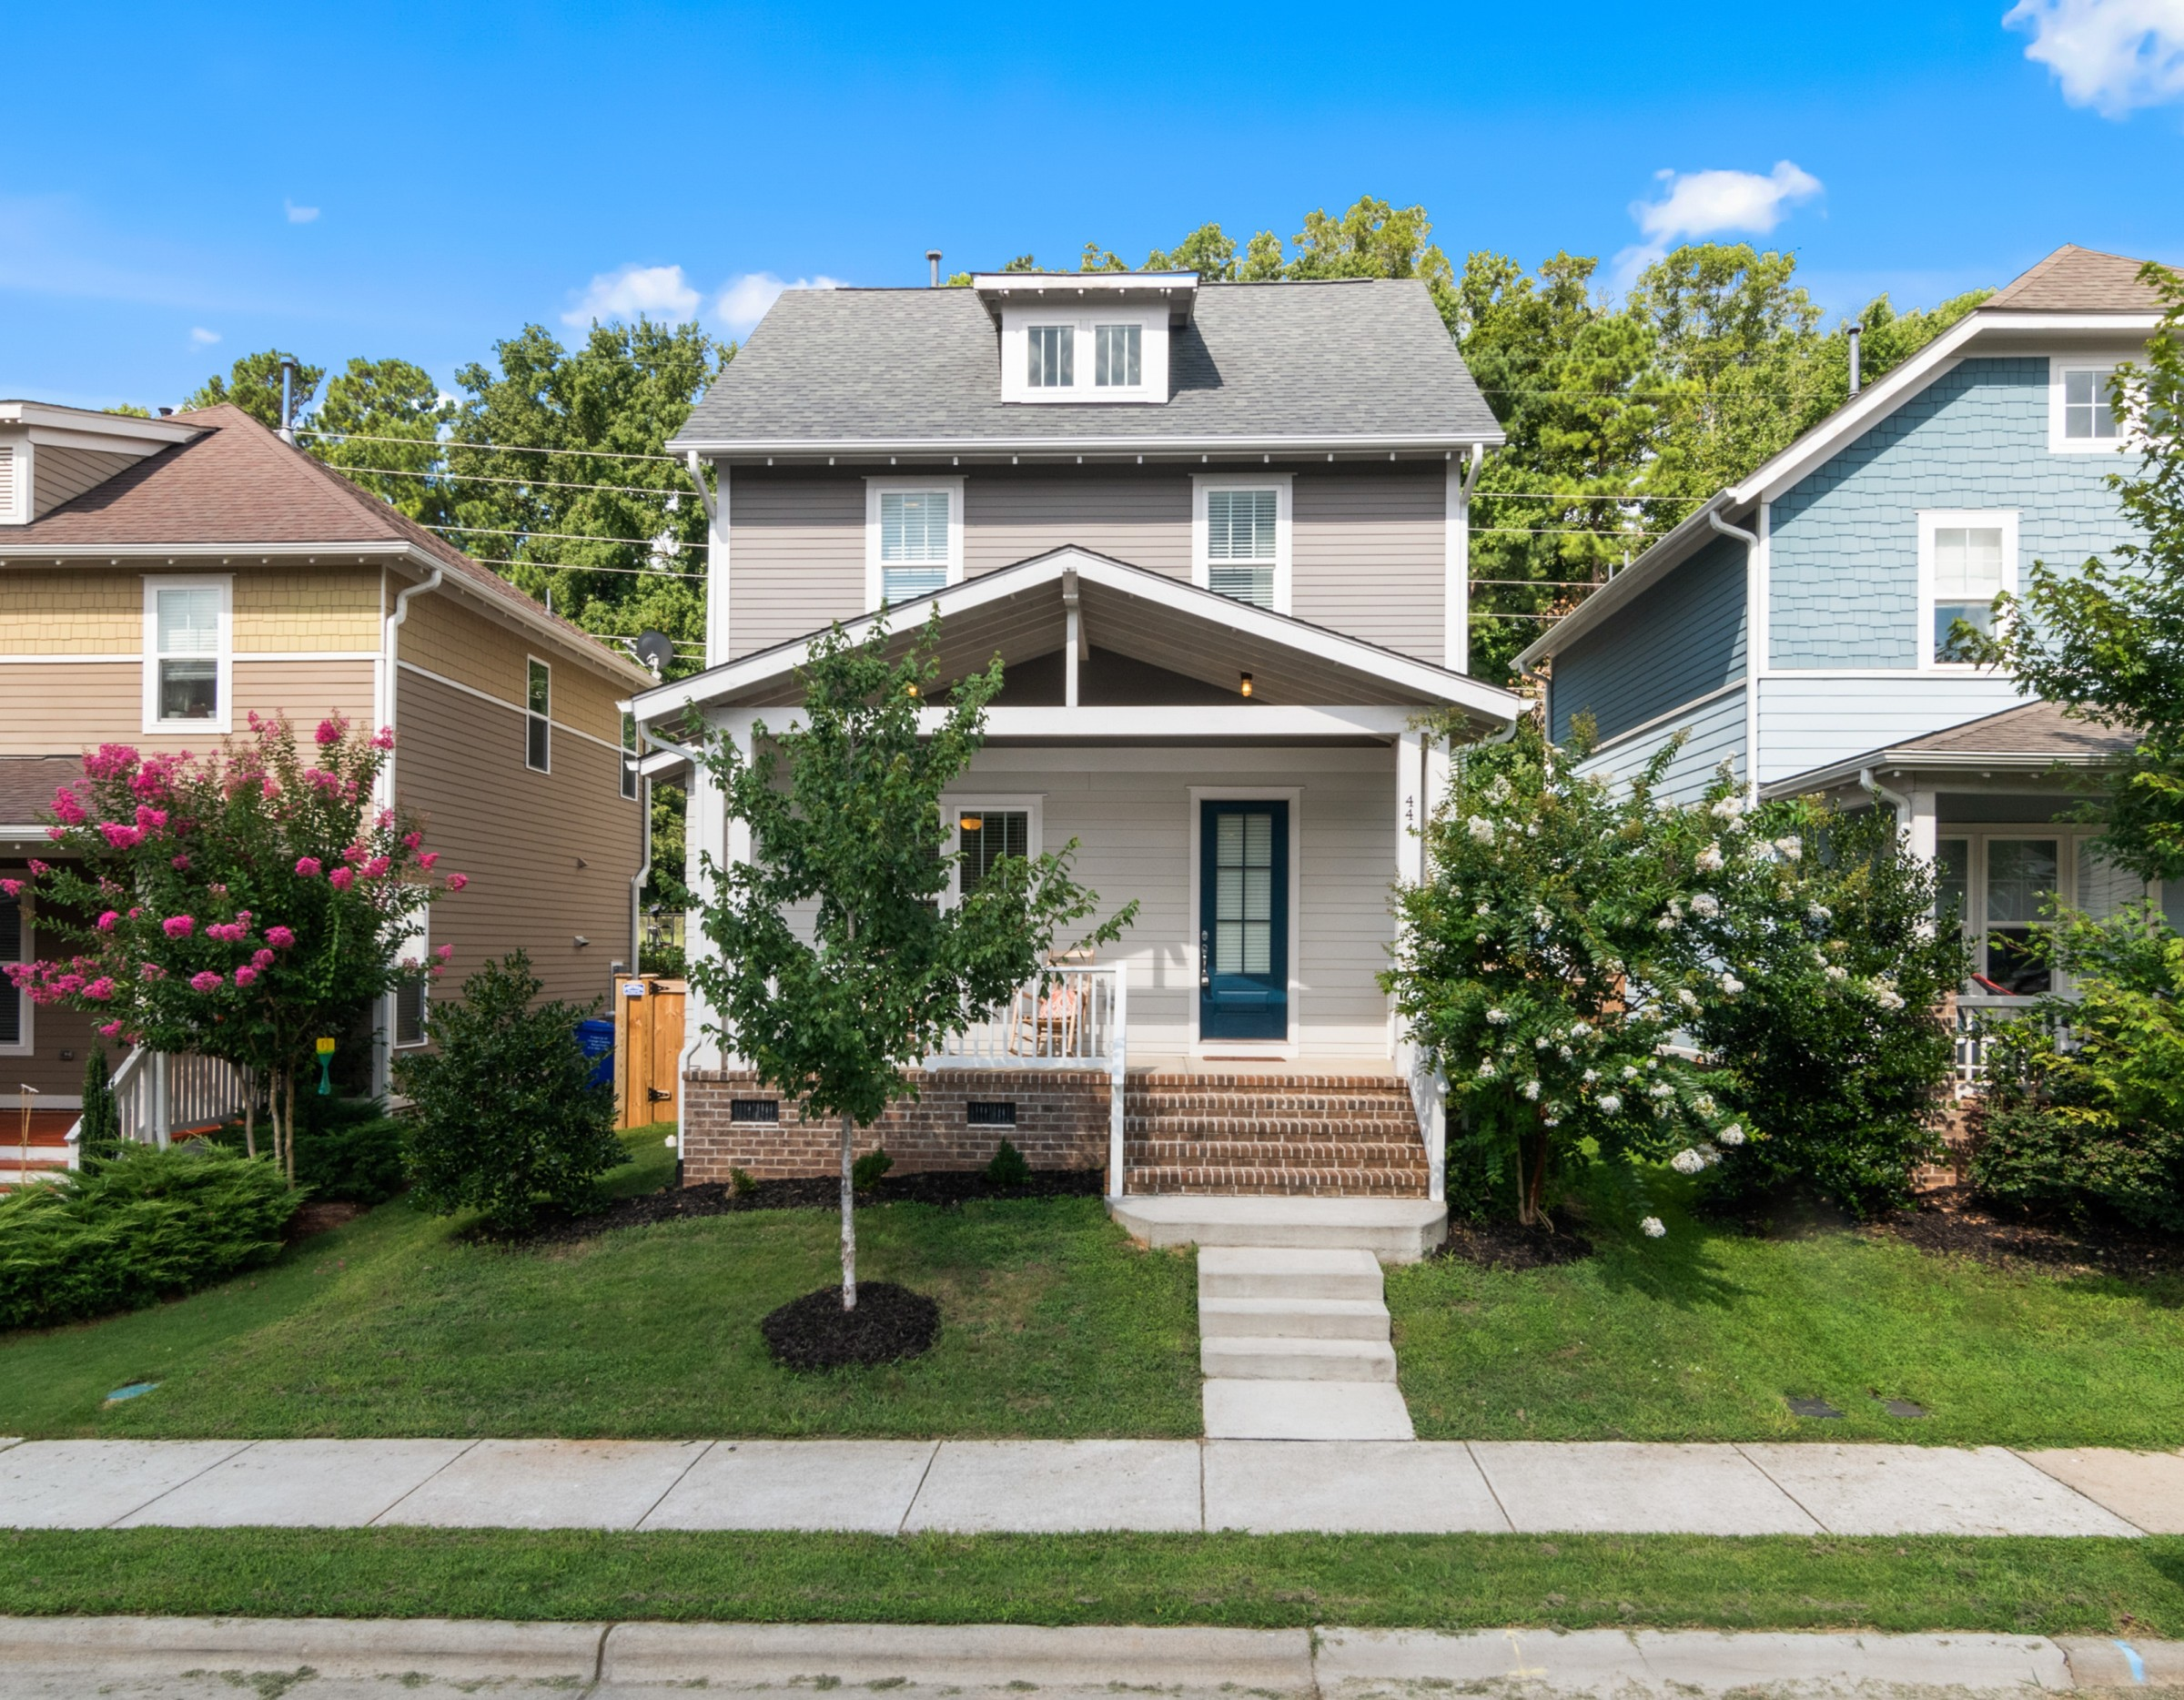 How To Sell A House Fast Despite Tax Liens